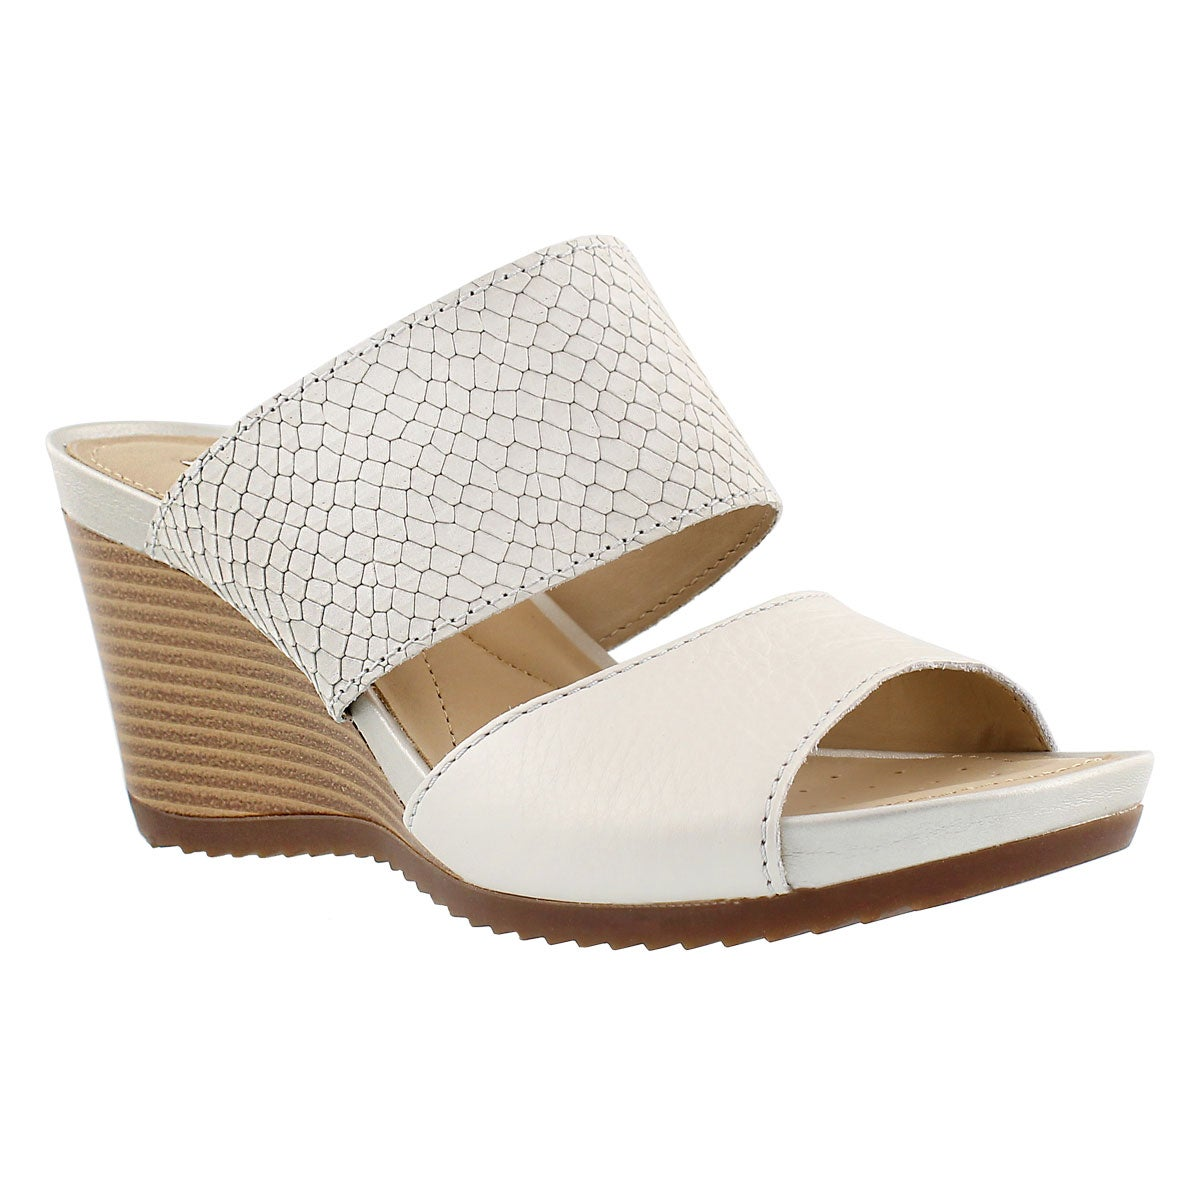 Lds New Rorie white slip on wedge sandal